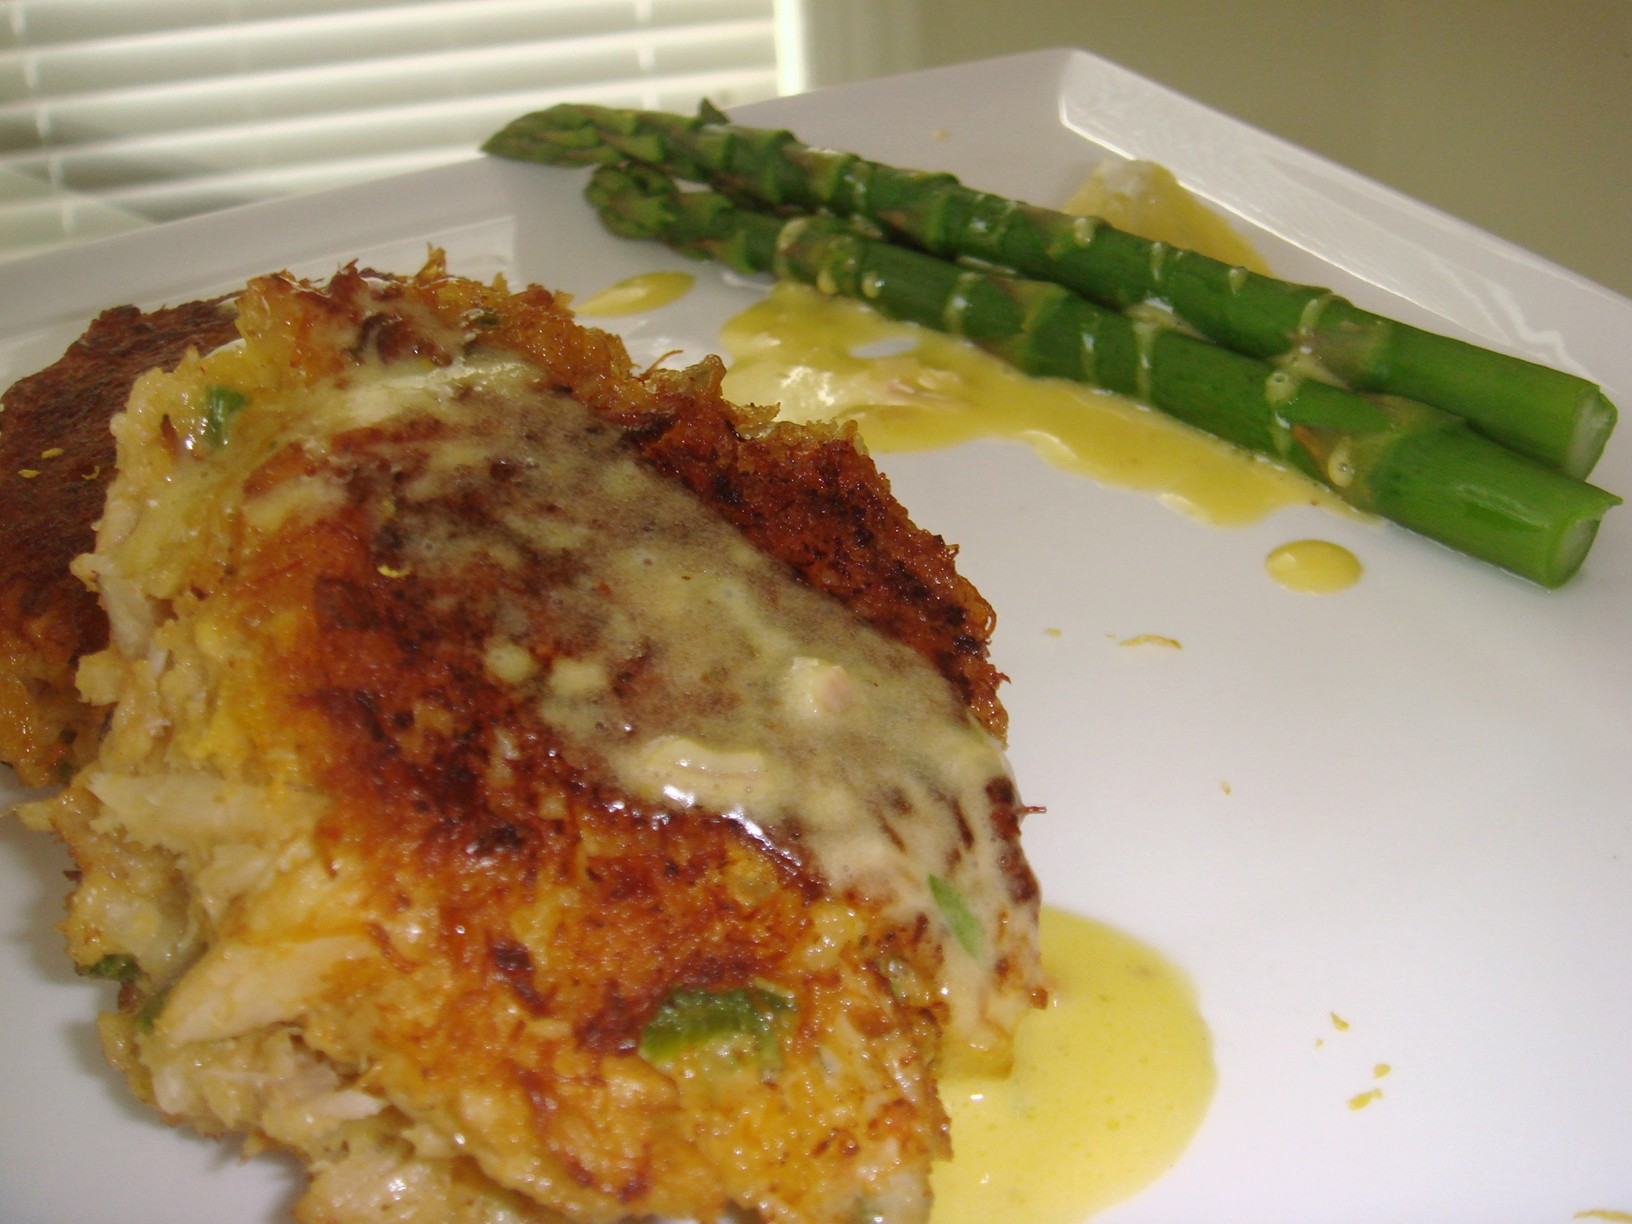 ... crab cake with blanch asparagus and drizzle some bearnaise sauce